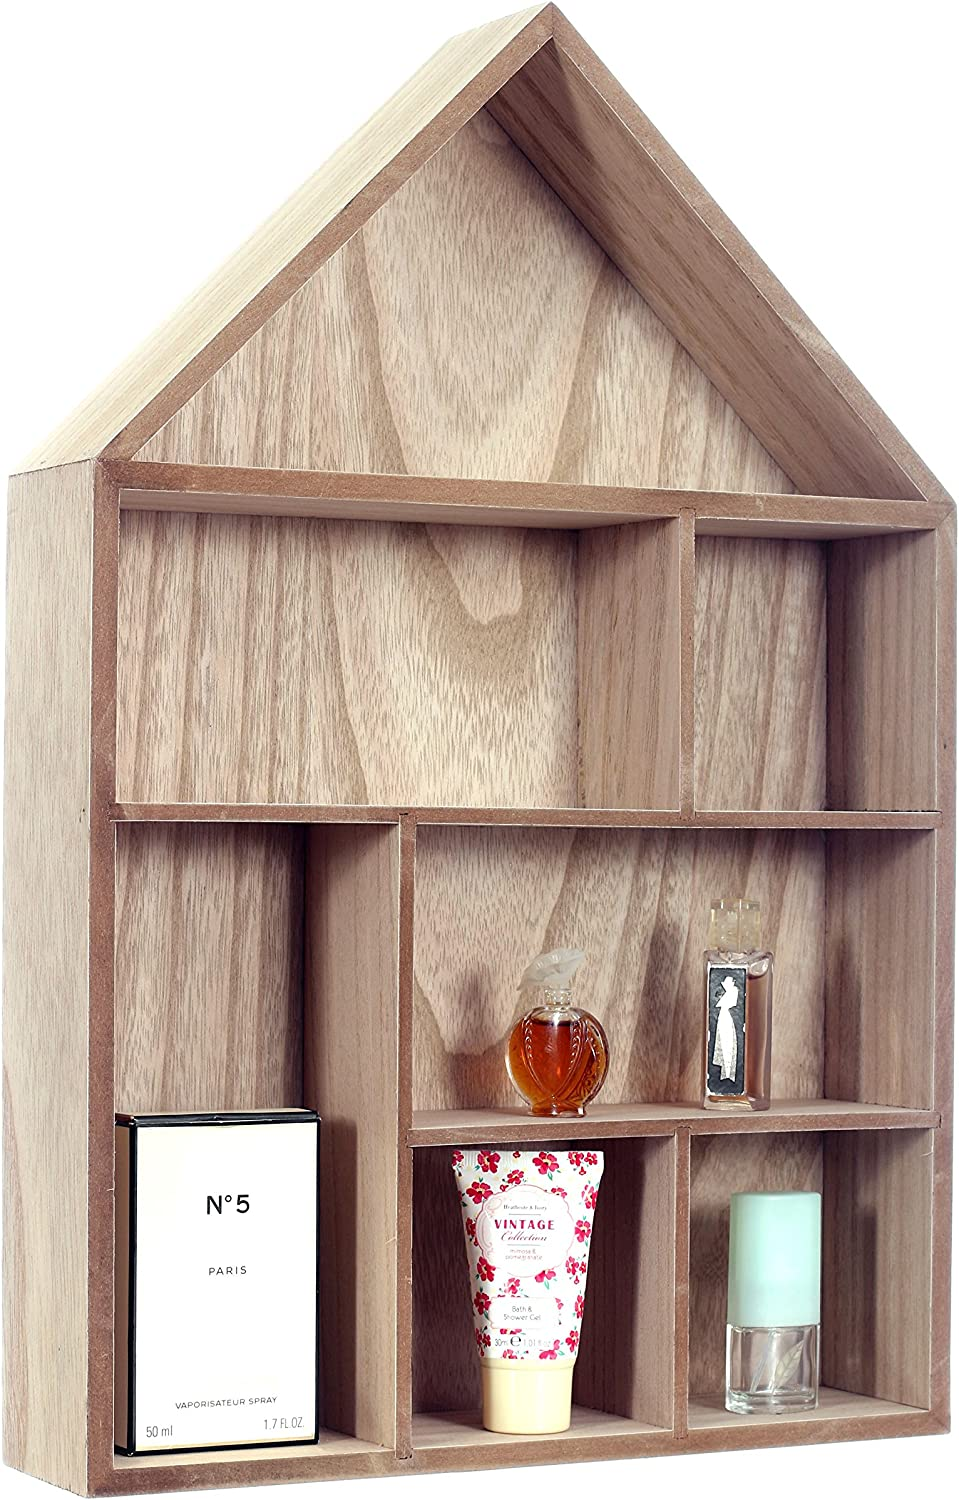 Multi-Colour 5.05 x 3.02 x 0.81 cm tohang up Rayher Wooden Seed Box House,FSC Mix Credit 30x50x8cm 8 Sections